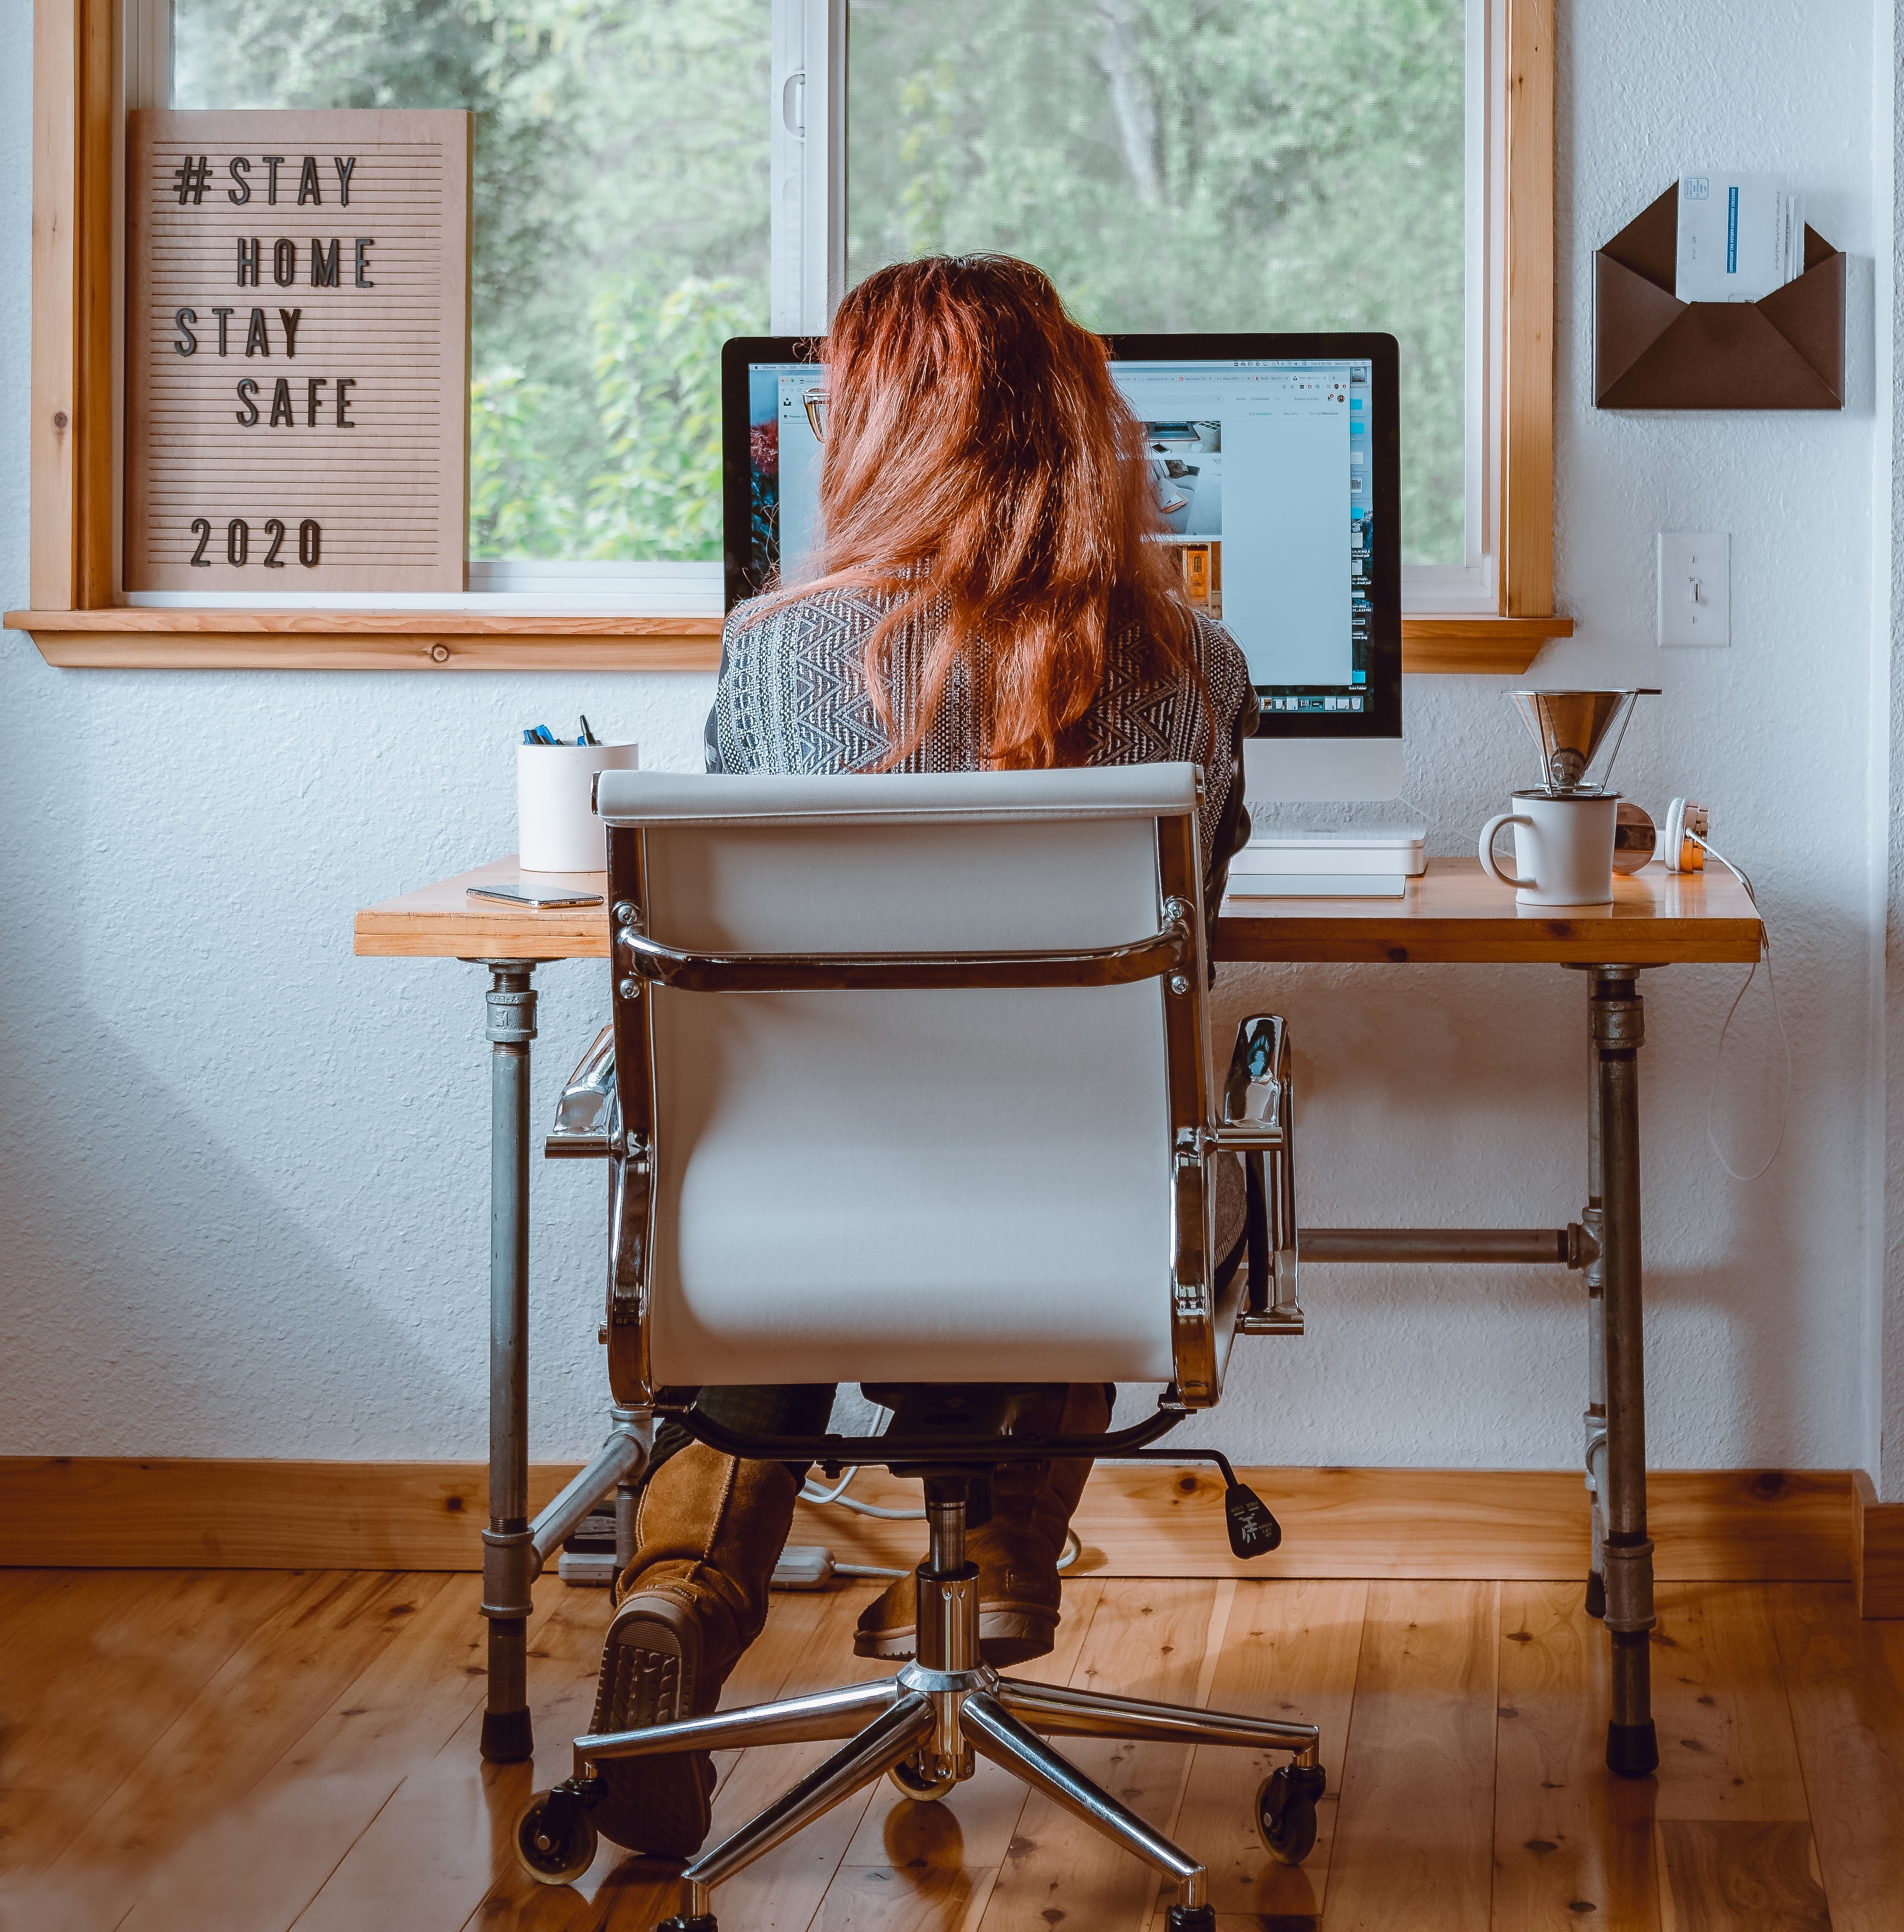 10 Benefits of Having a Home Office